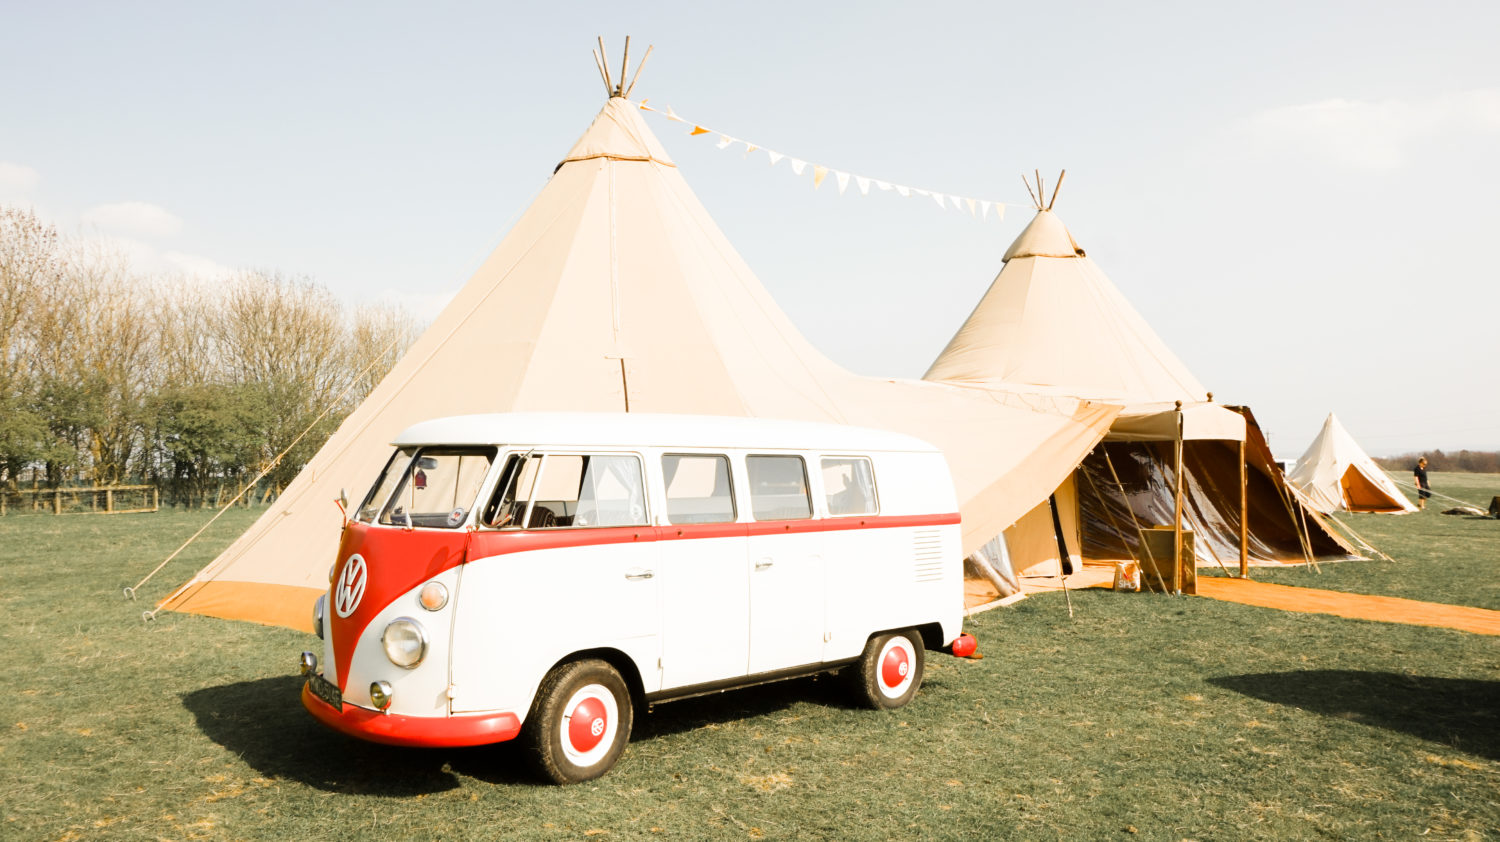 1967 Type 2 VW Camper Van in front of Tipi Wedding North East